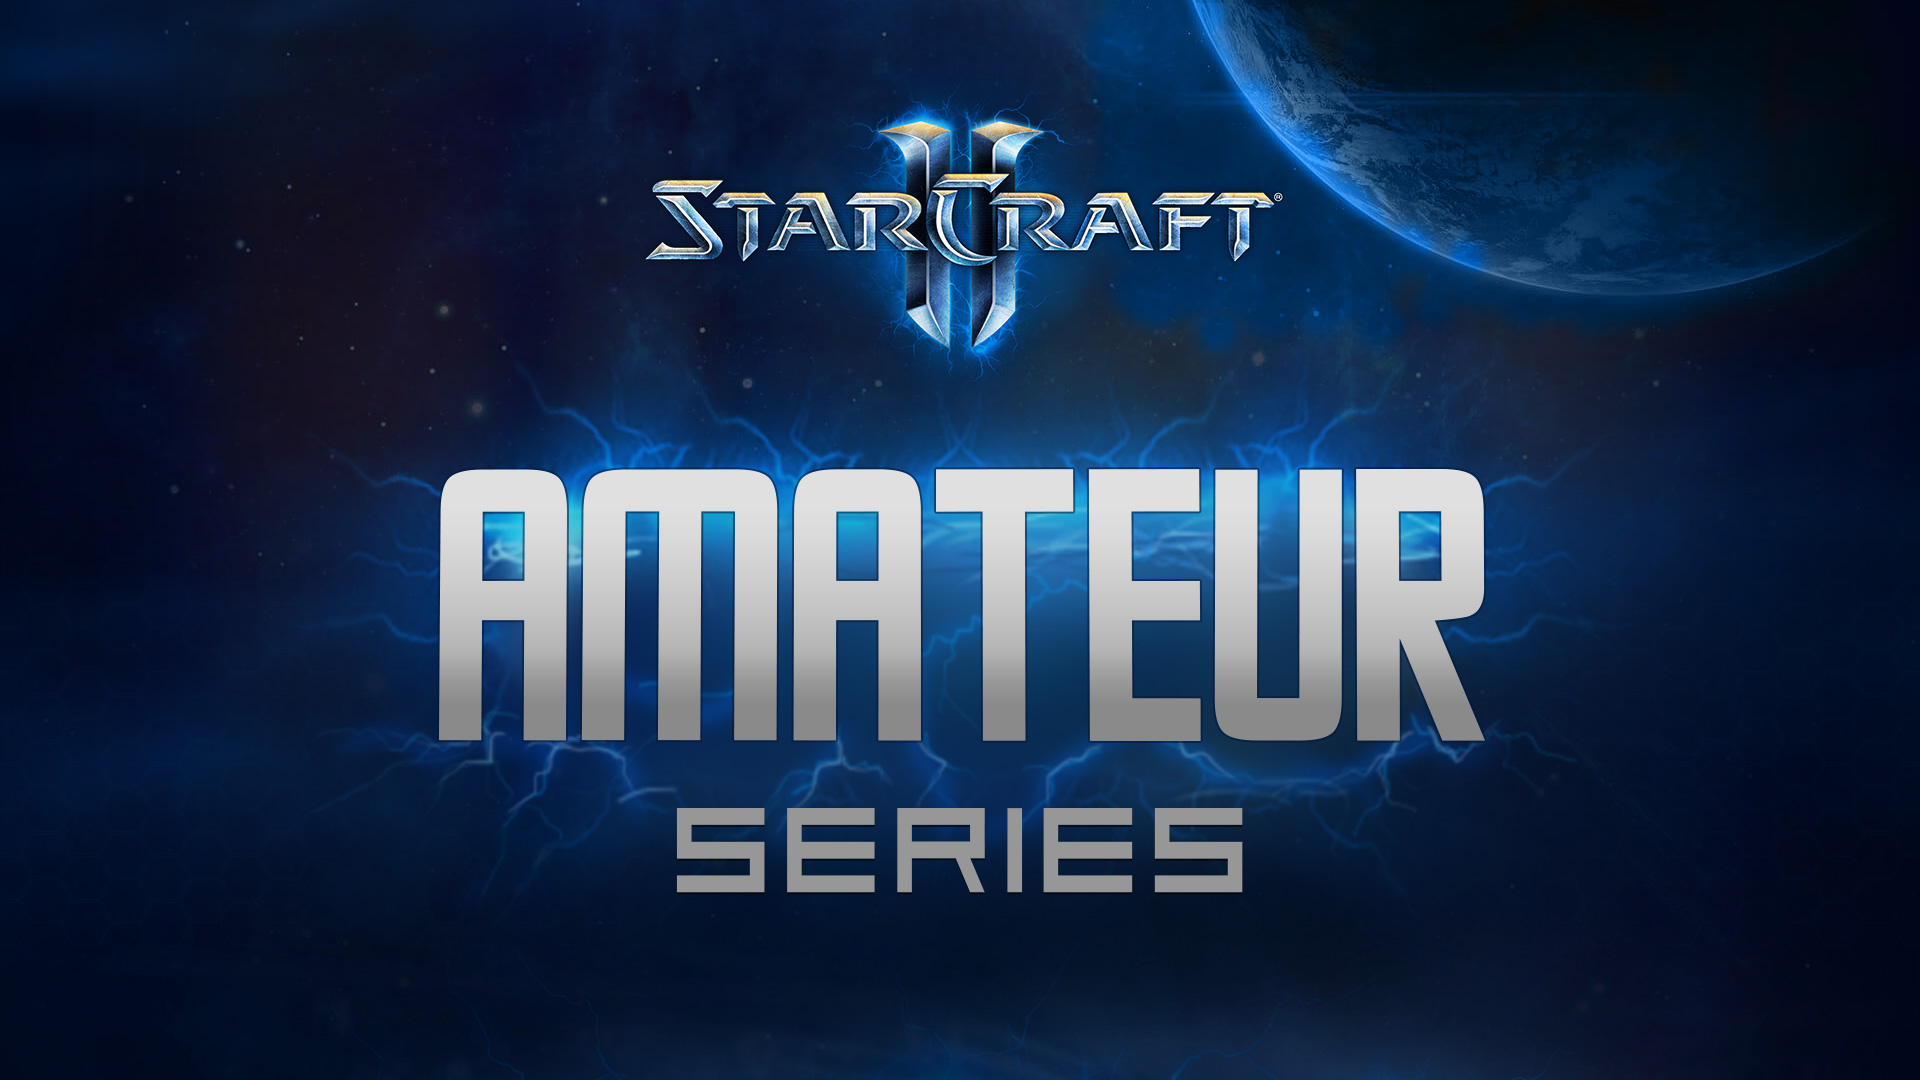 StarCraft II Amateur Series